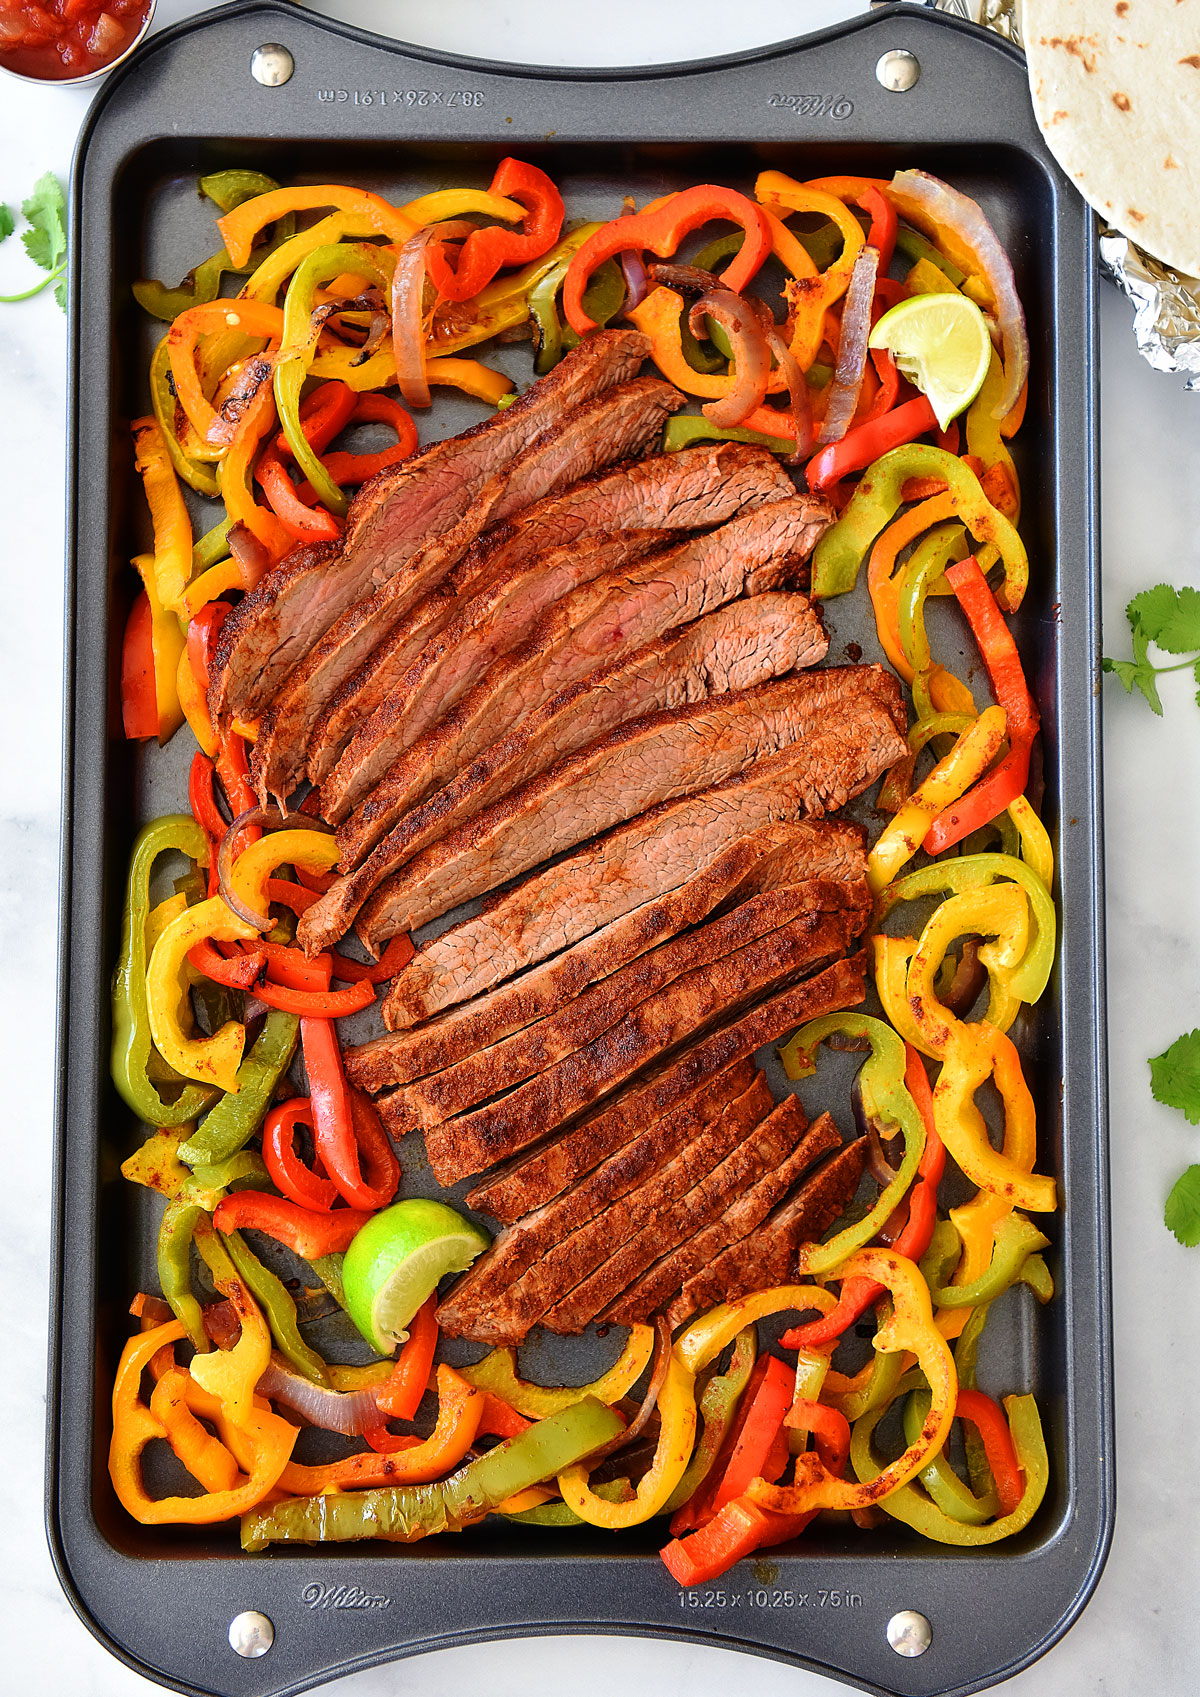 Sheet Pan Steak Fajitas are just like classic fajitas with grilled onions, bell peppers and steak. Life-in-the-Lofthouse.com